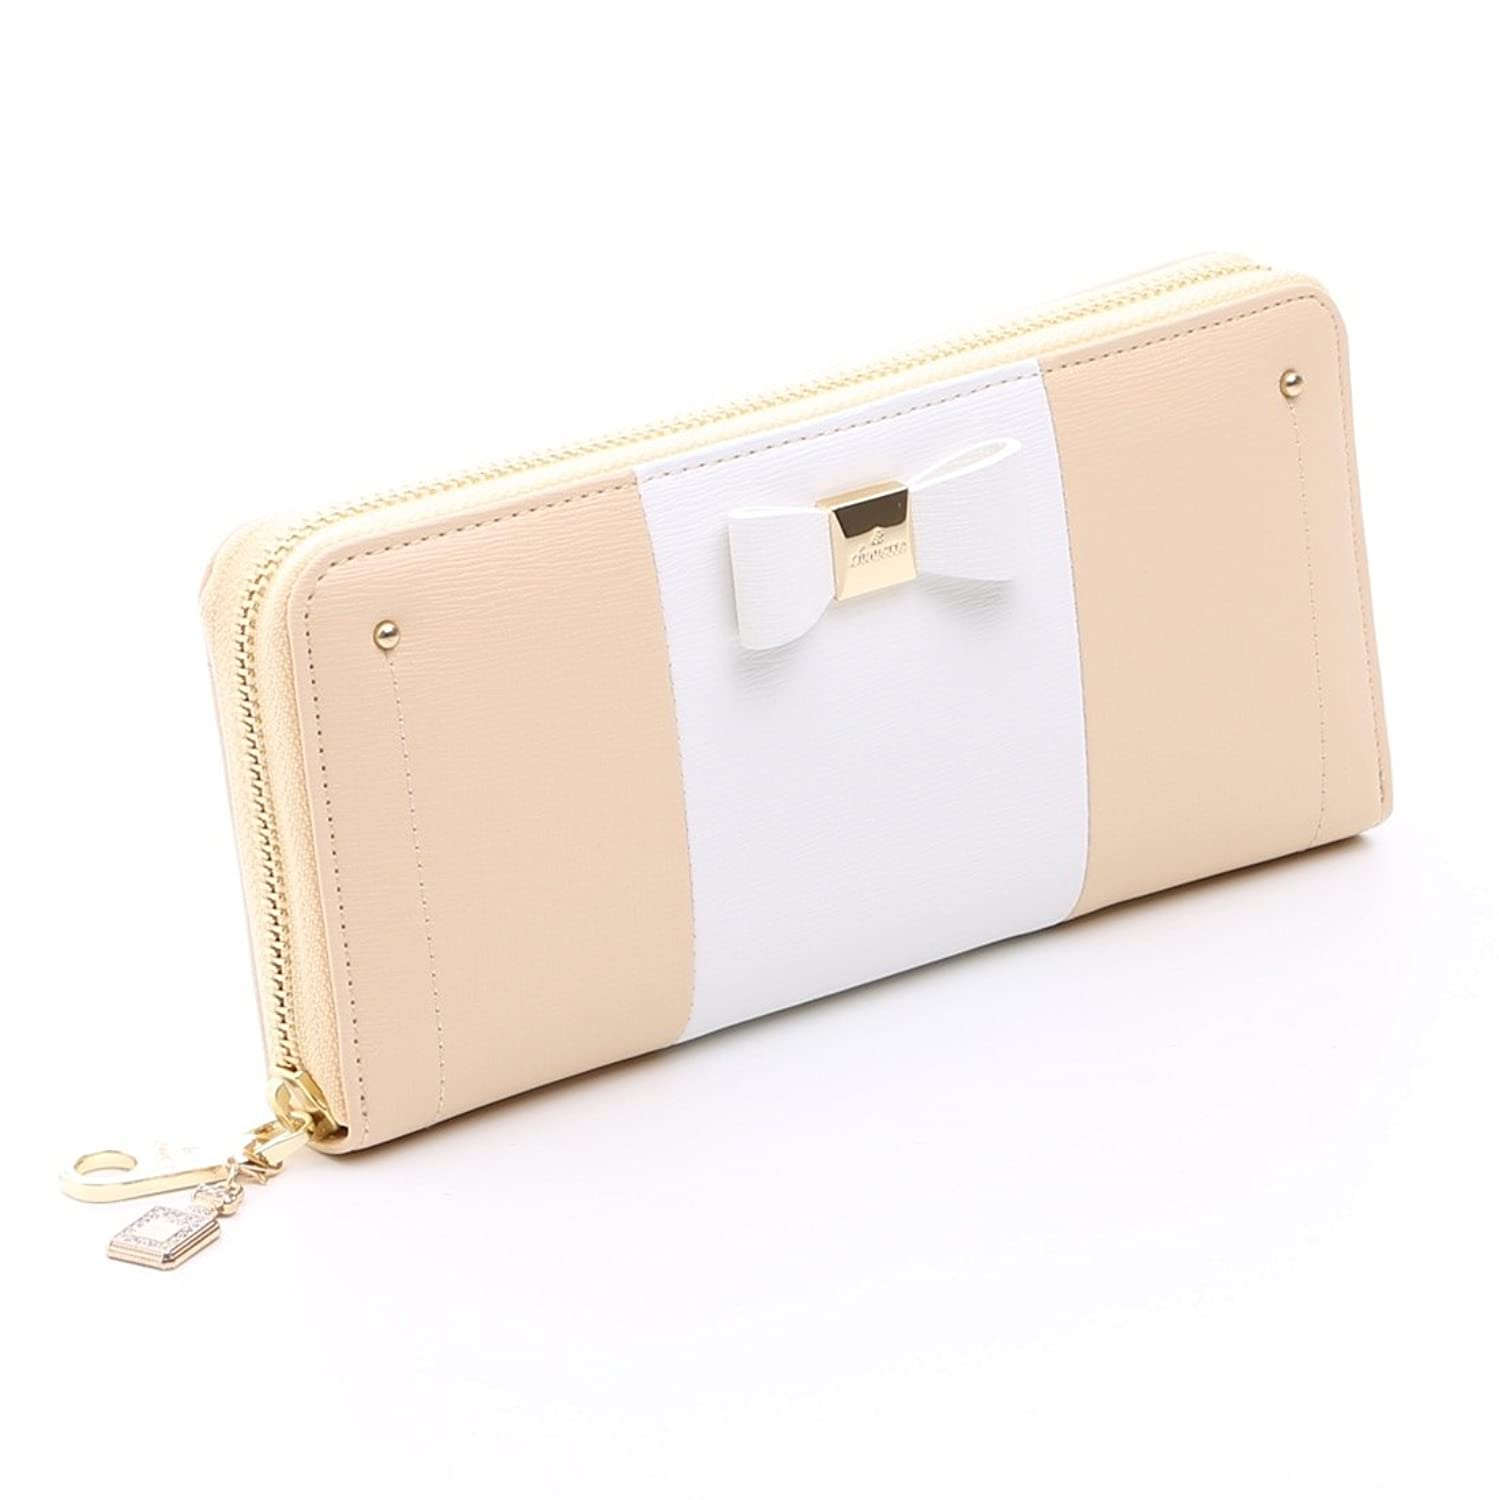 &Chouette Fashion Lady Women Clutch Ribbon Long Wallet Card Holder Purse Samantha Thavasa japanese style